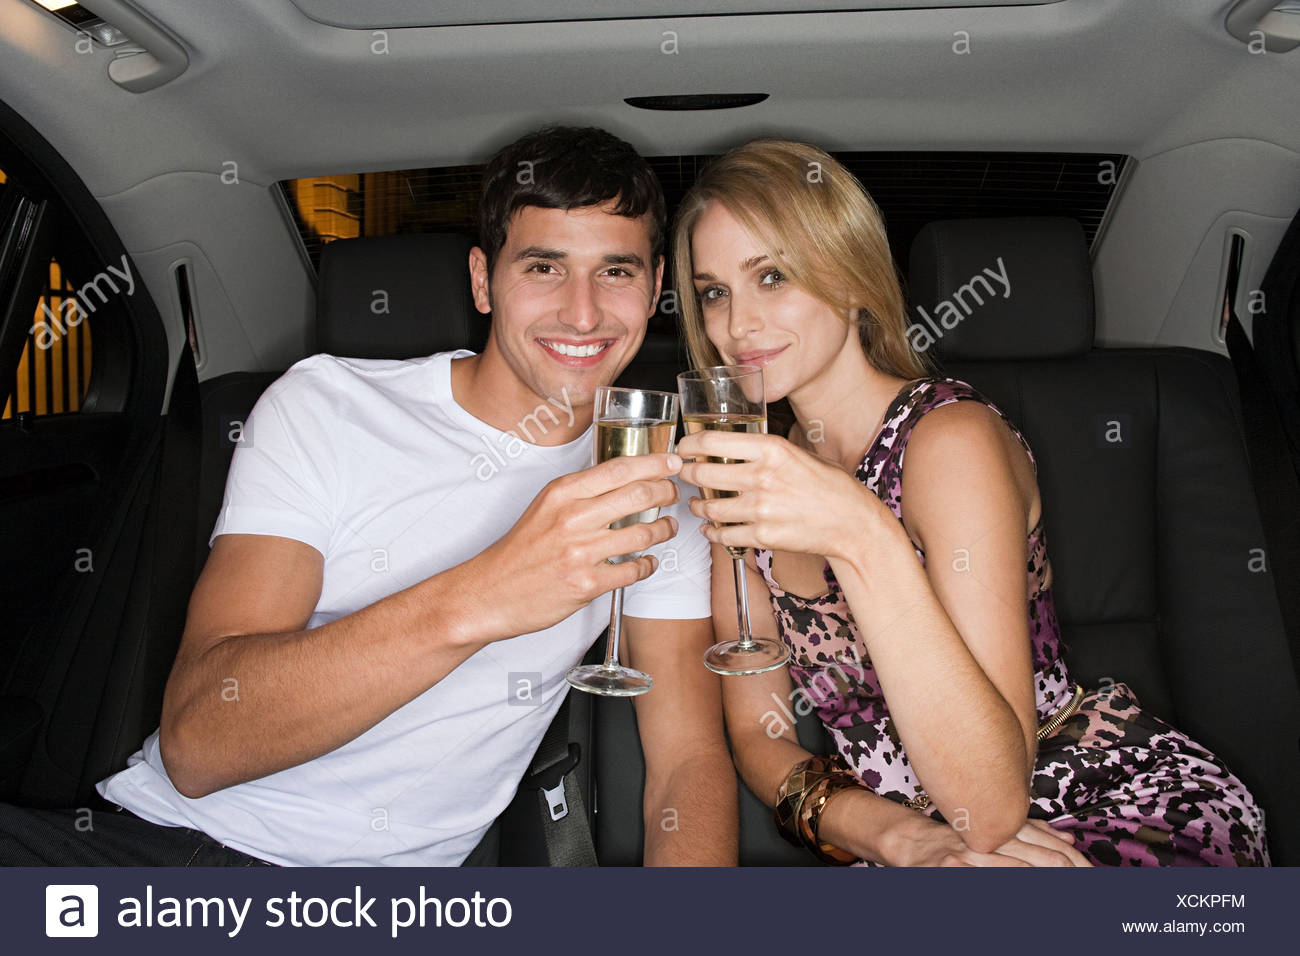 Couple celebrating in the back of a car - Stock Image